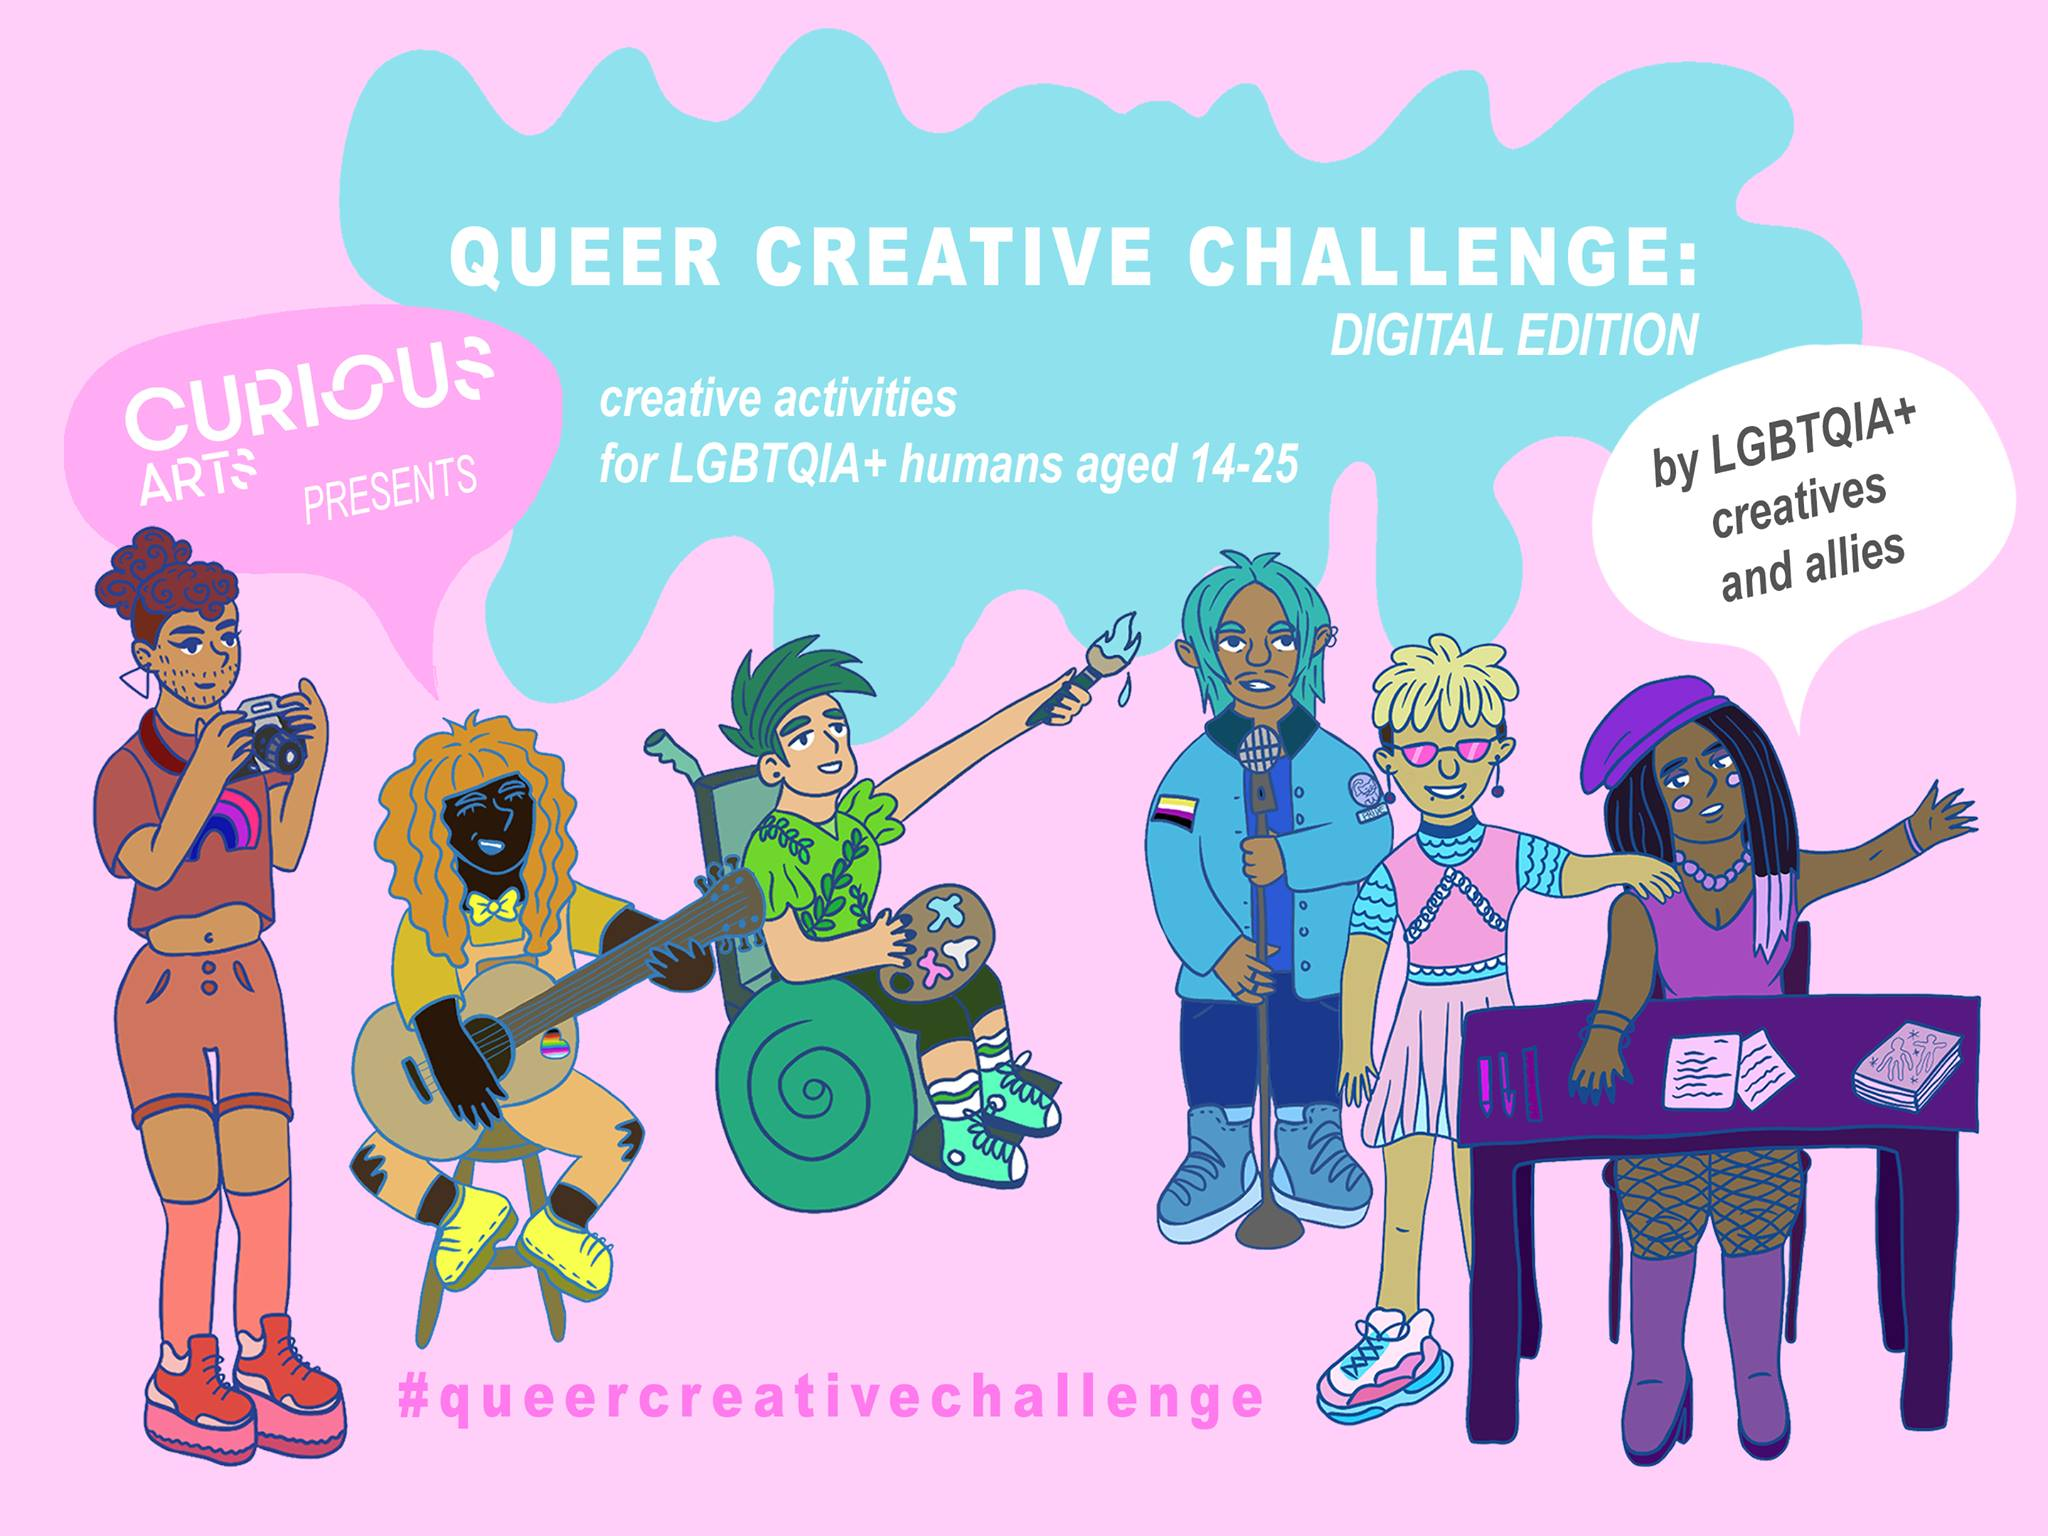 A poster for Curious Arts' Queer Creative Challenge